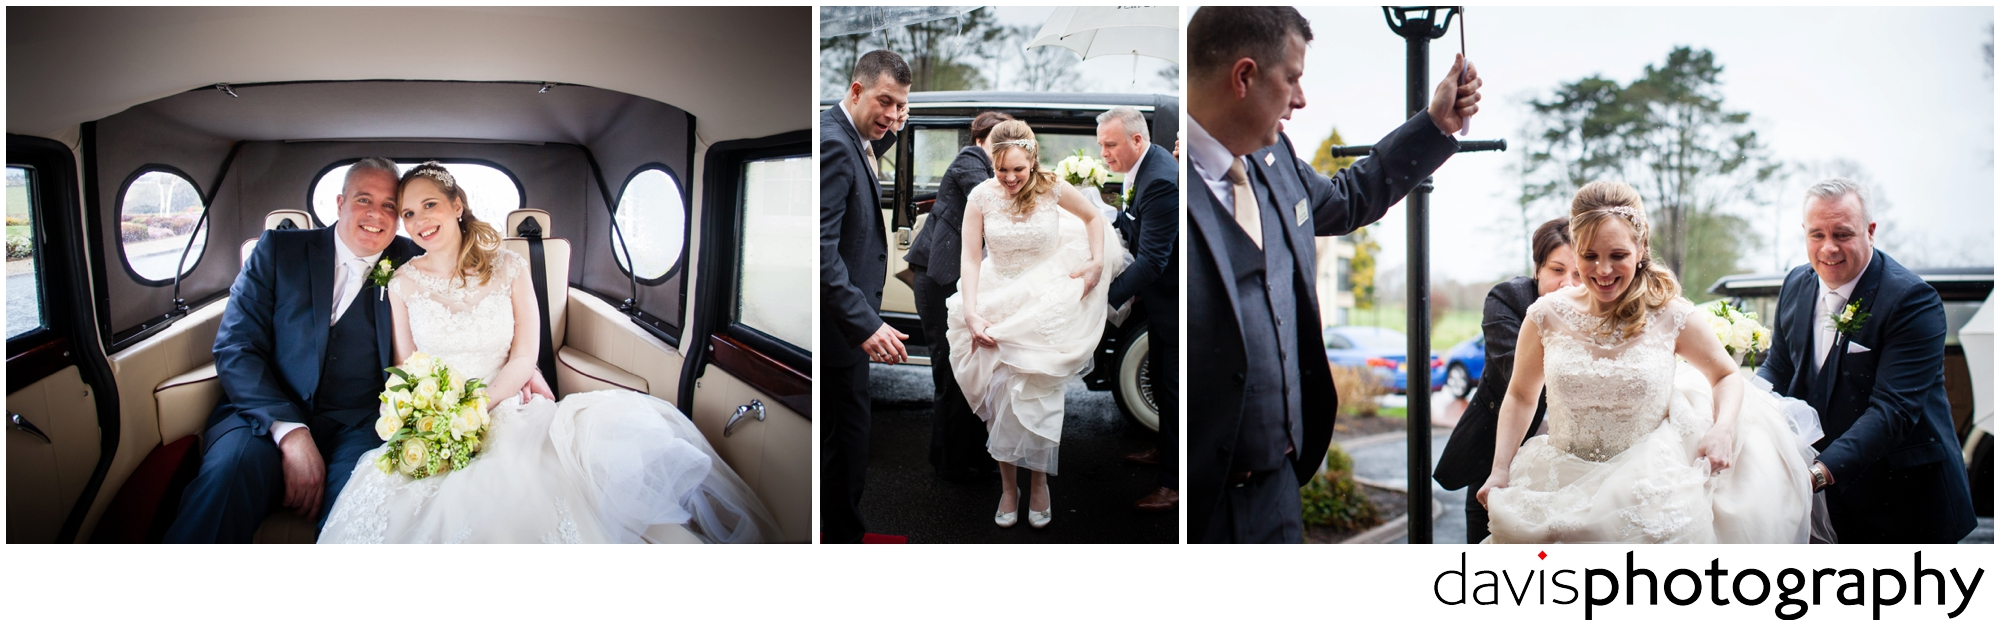 bride steps out of limo at hotel